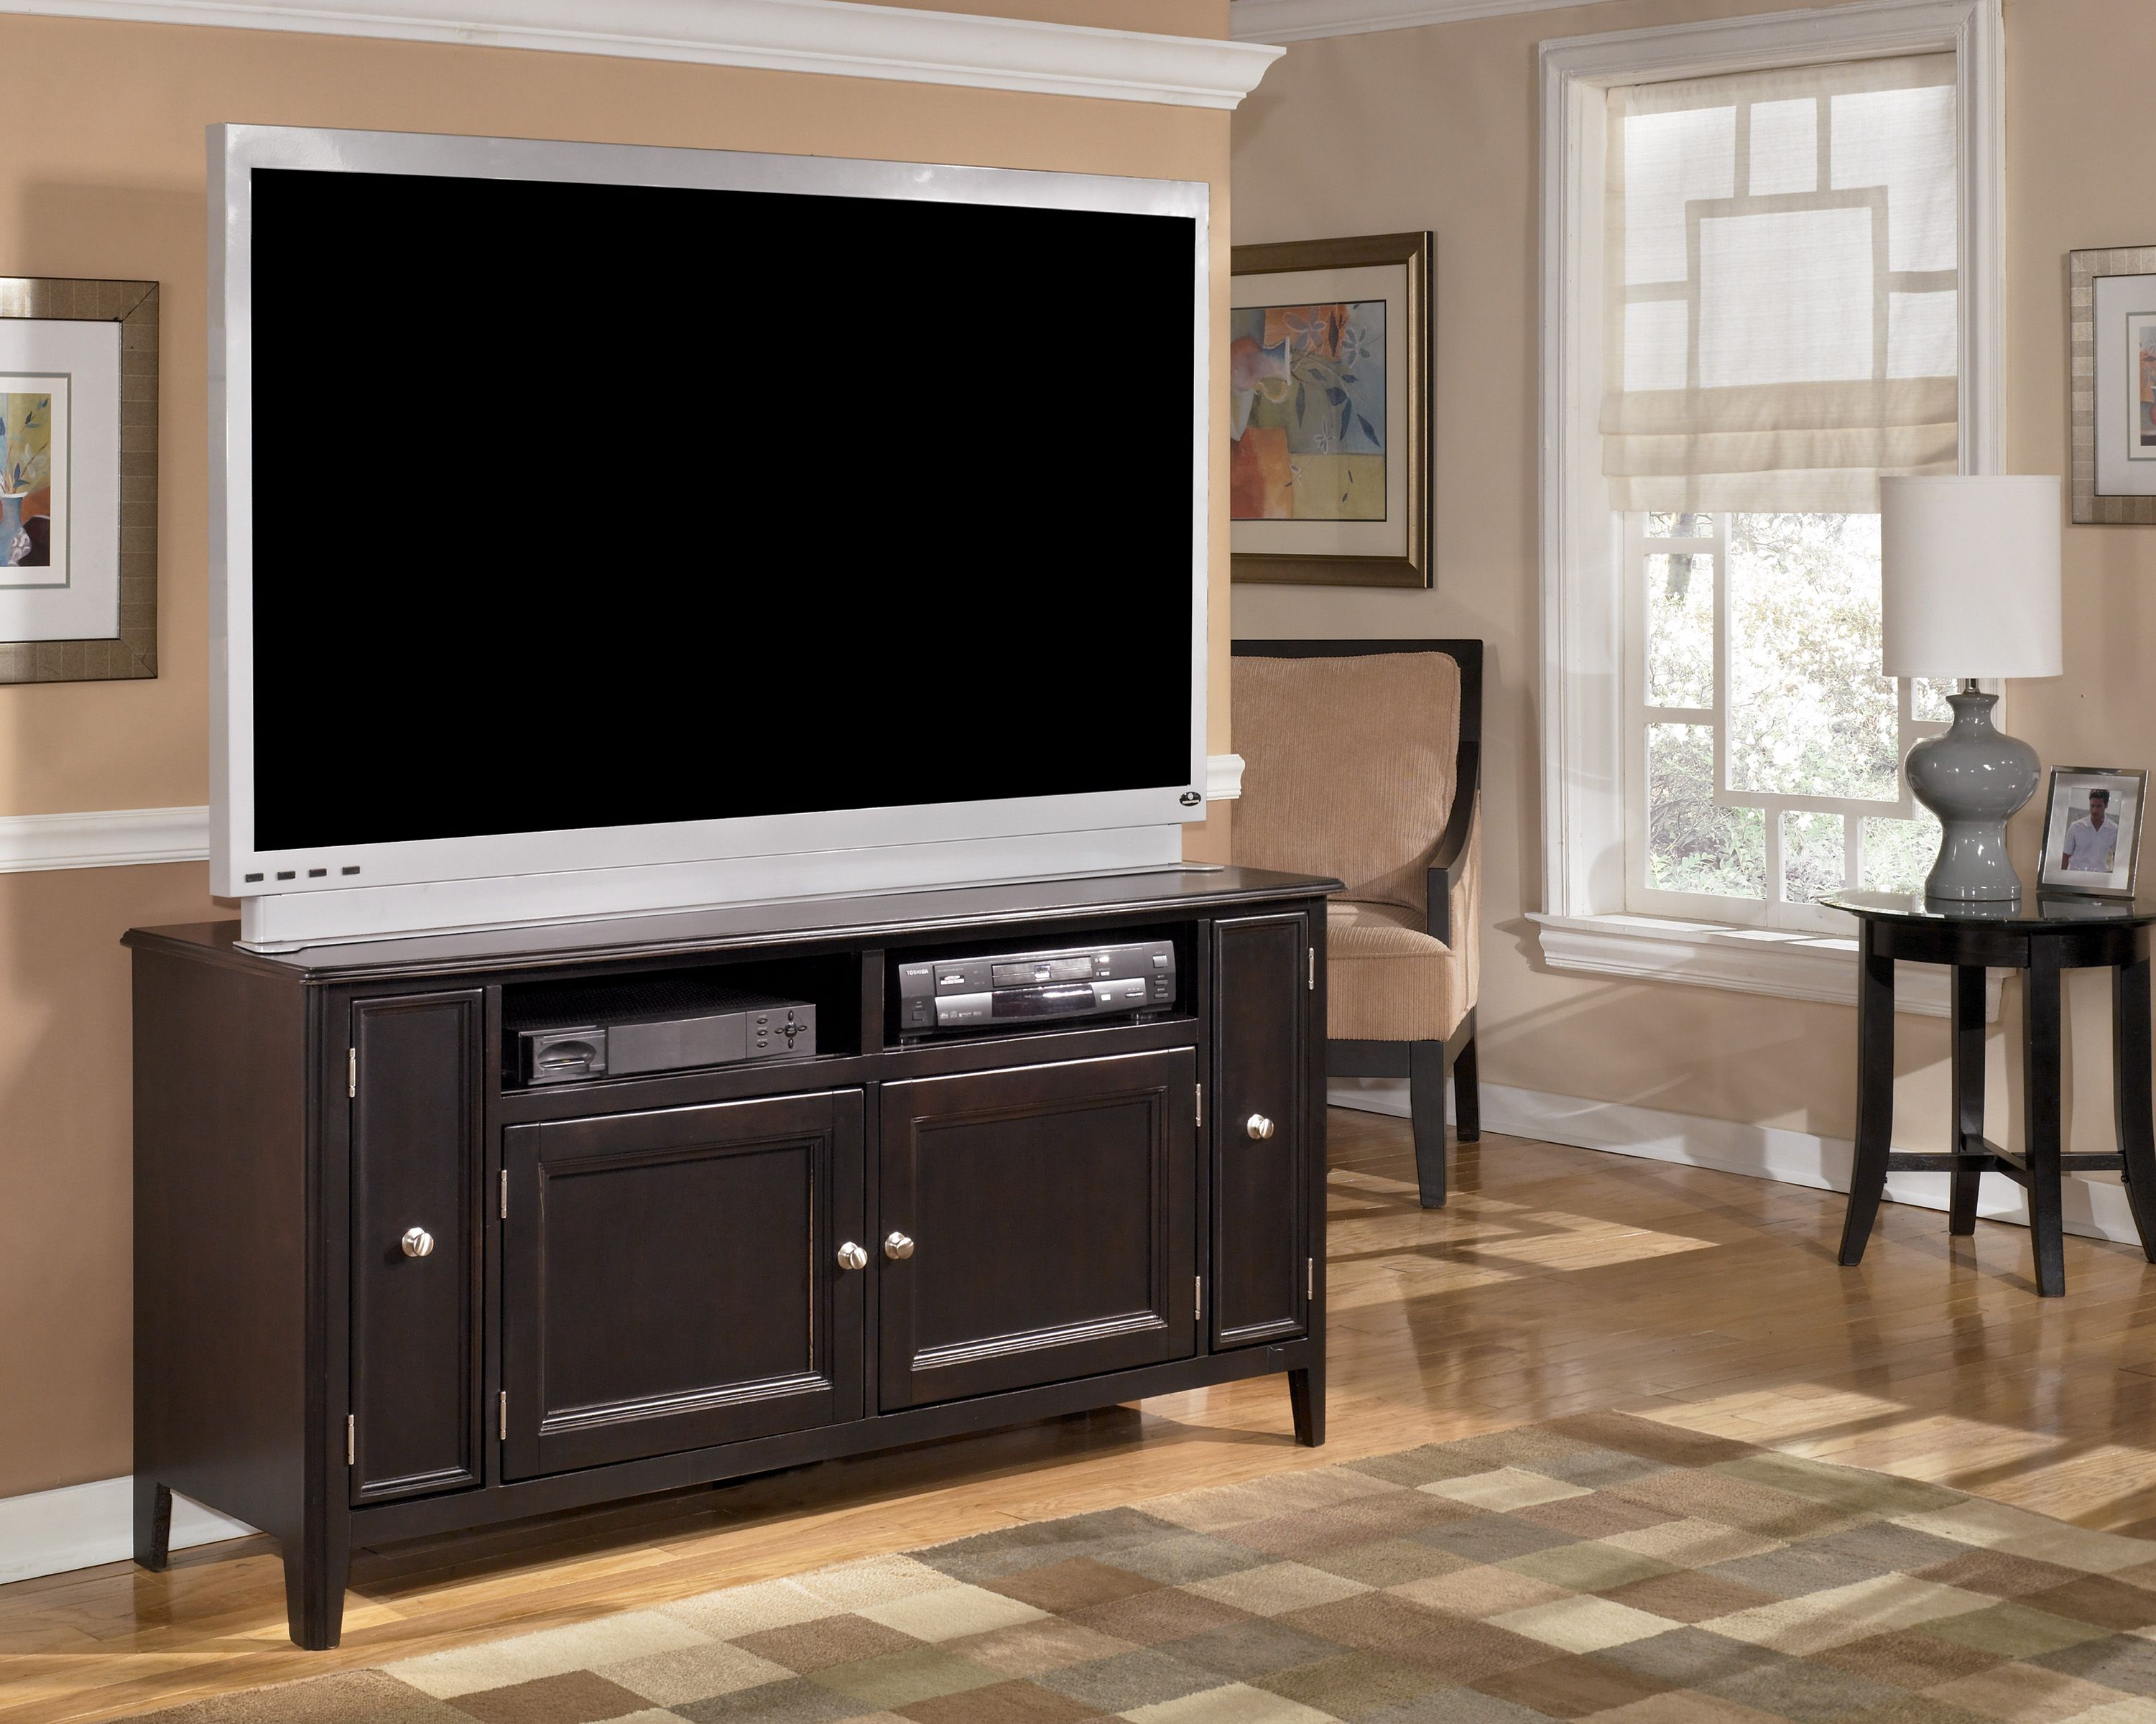 Ashley Furniture W371 38 60 Carlyle Tv Stand Large Tv Stands